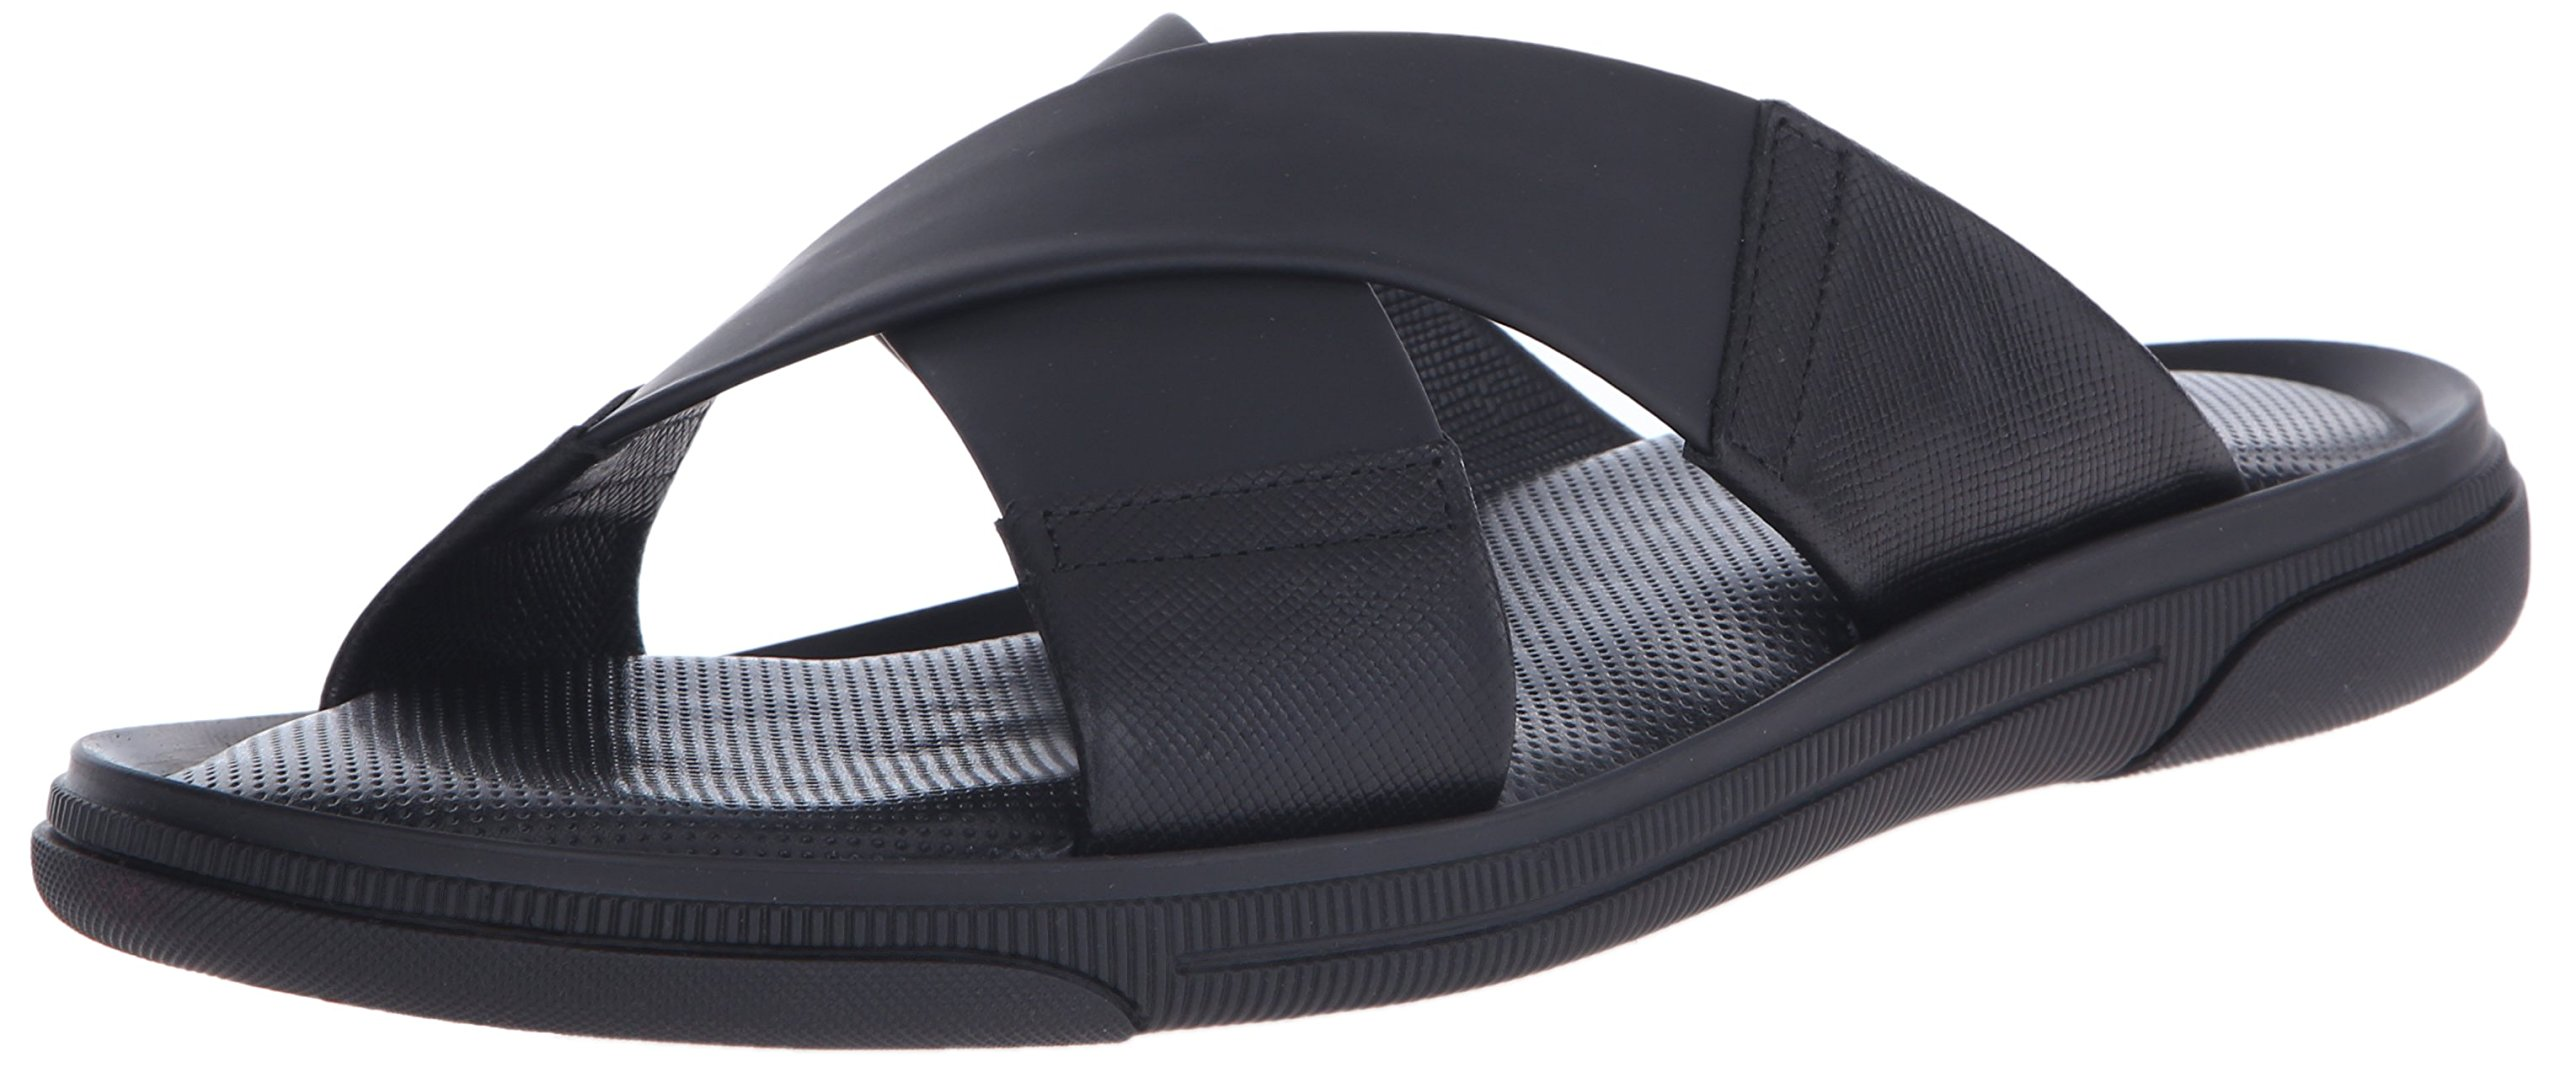 To Boot New York Men's Bridge Slide Sandal, Vitello Saff Crust/Nero/Tech Pro, 8.5 M US